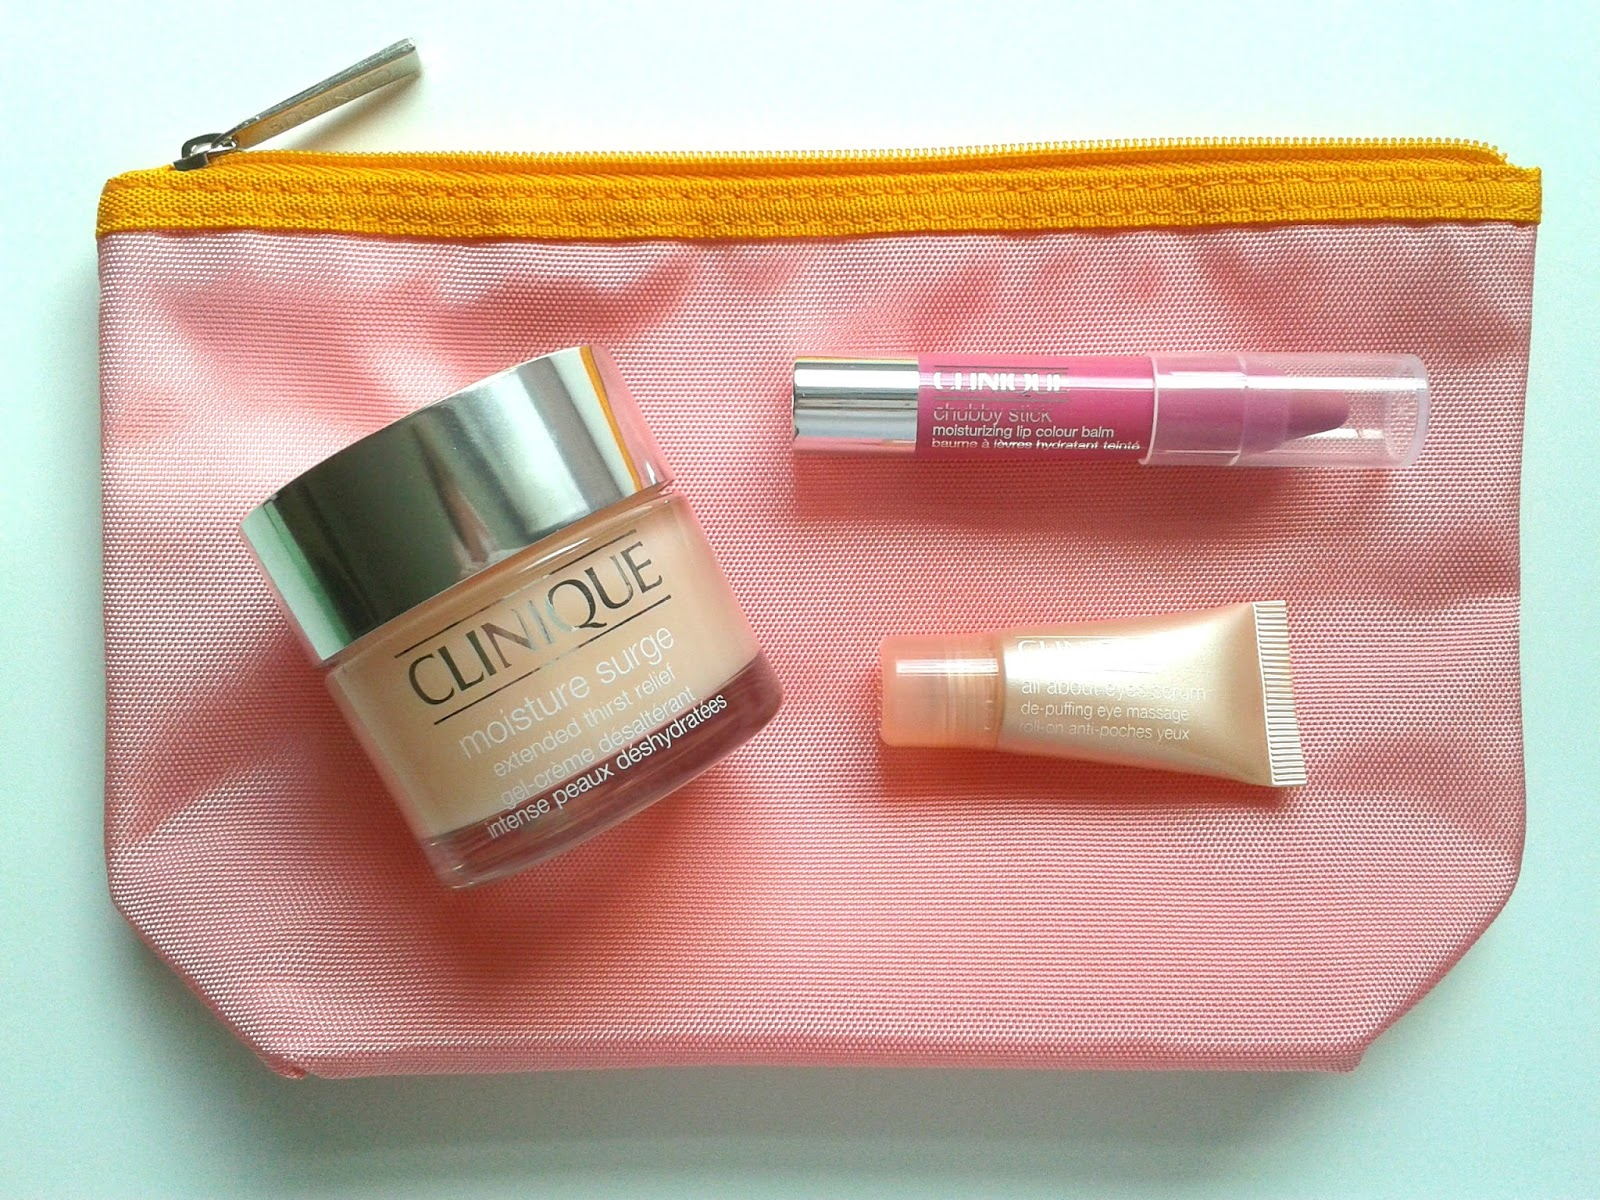 Clinique Moisture Favourites Set Beauty Review Clinique Chubby Stick Moisturising Lip Colour Balm in Woppin' Watermelon Clinique Moisture Surge Extended Thirst Relief Clinique All About Eyes Serum De-Puffing Eye Massage